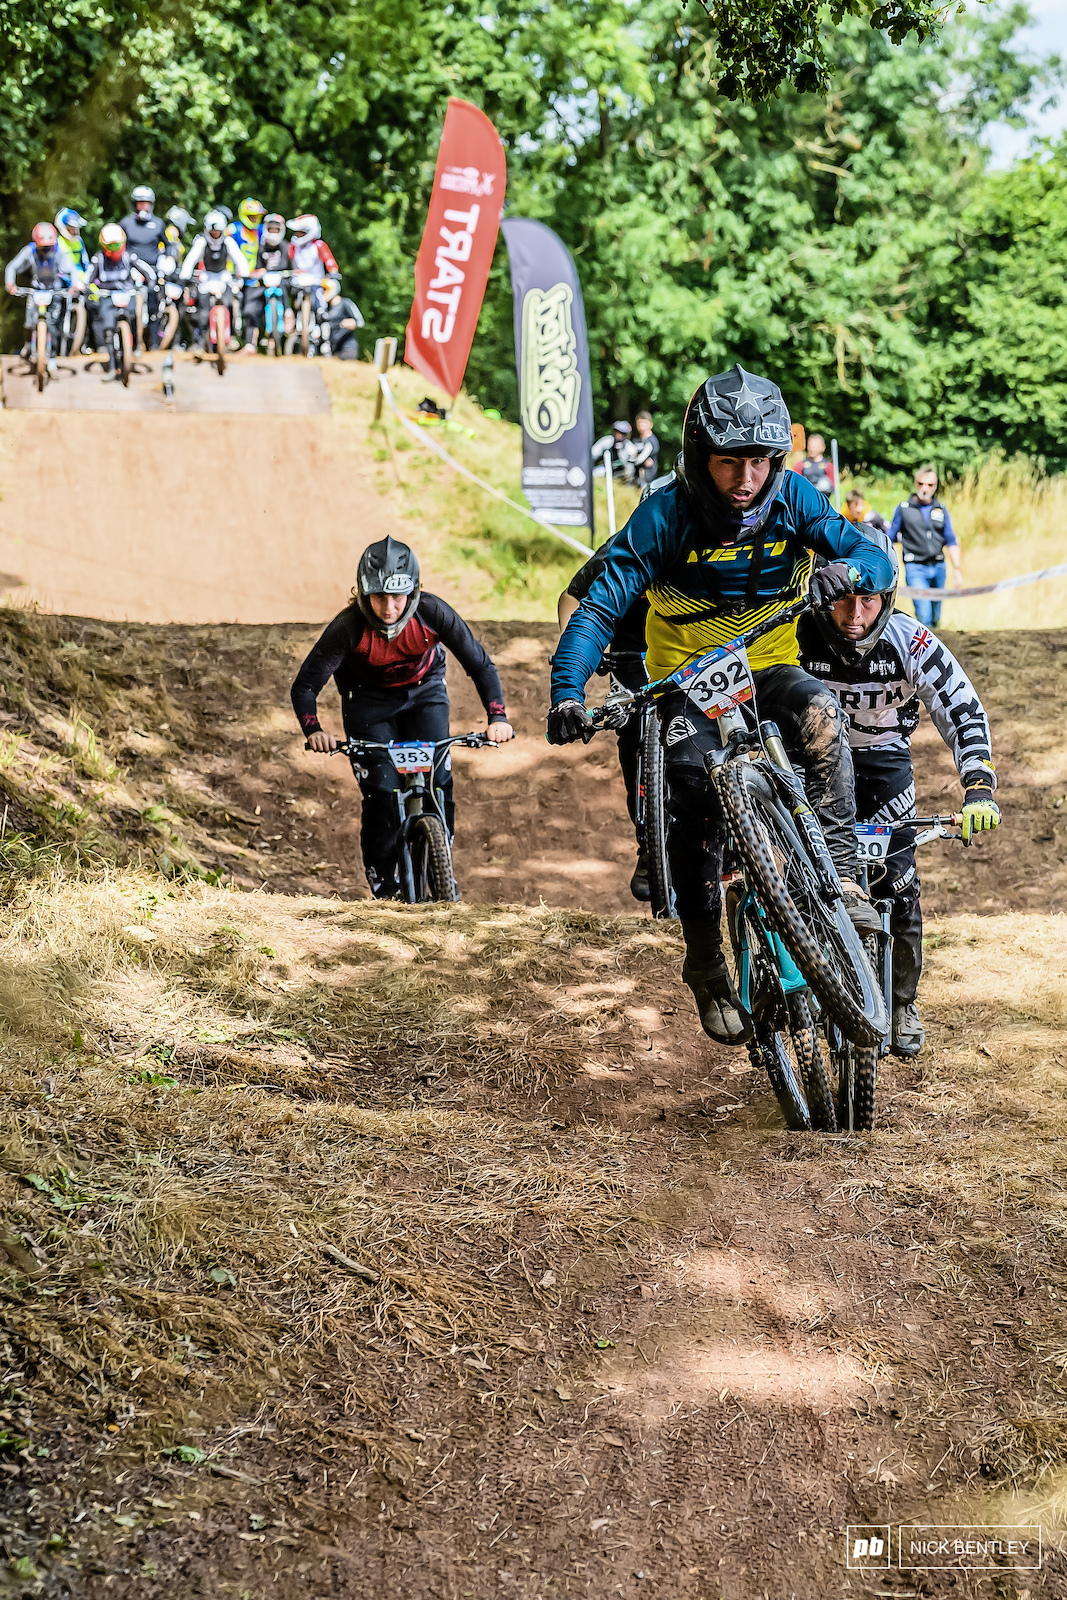 James Sankey had another good weekend on the 4X bike with a second in the 16-16 boys field.